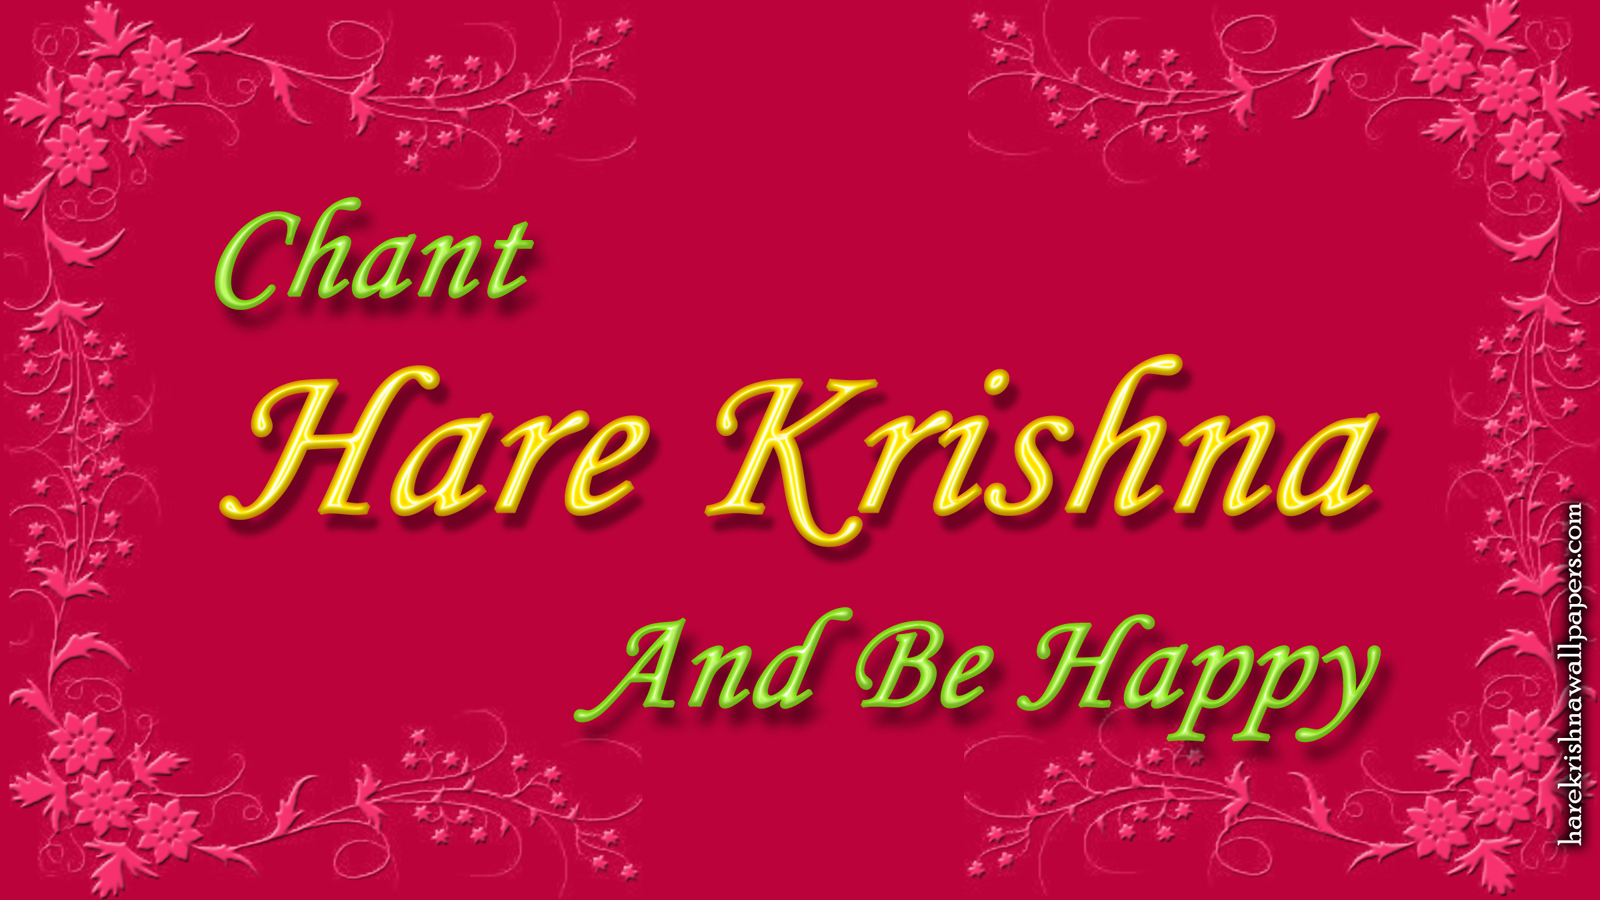 Chant Hare Krishna and be happy Wallpaper (008) Size 1600x900 Download